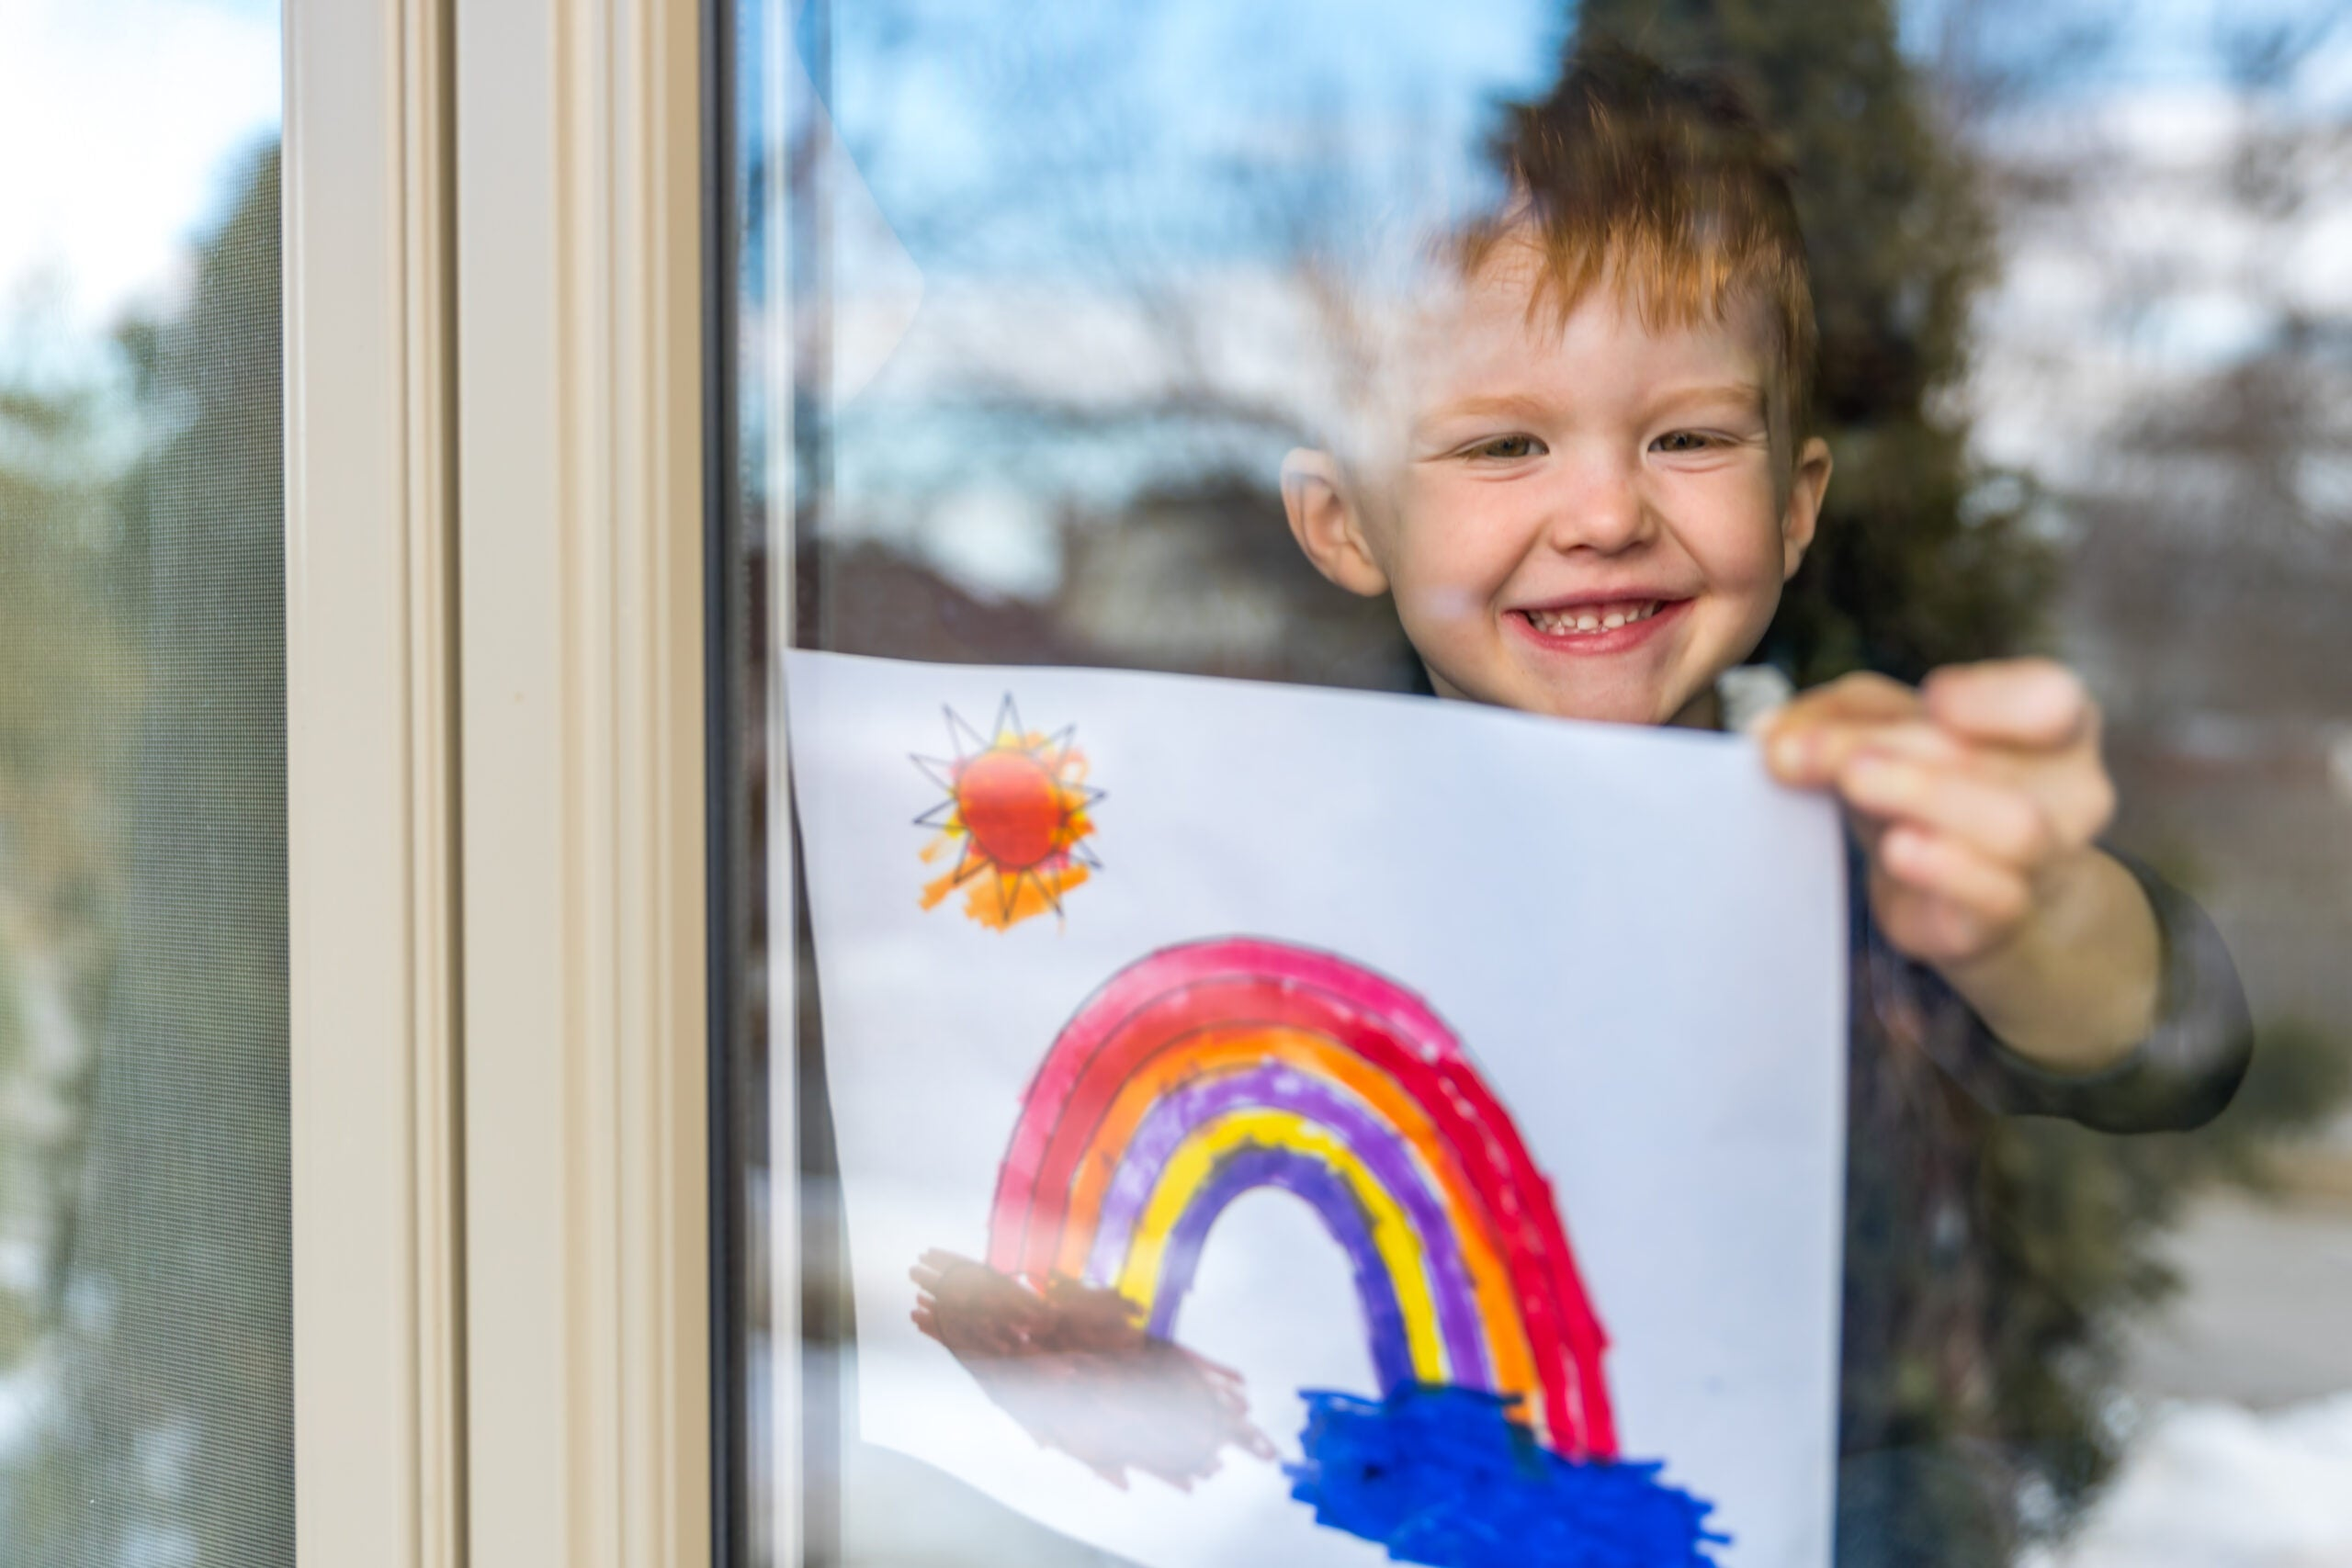 Young Boy sticking his drawing on home window during the Coronavirus Covid-19 crisis, Many people are putting a rainbow to tell neighbors that people inside this house are ok. #Stay at home.